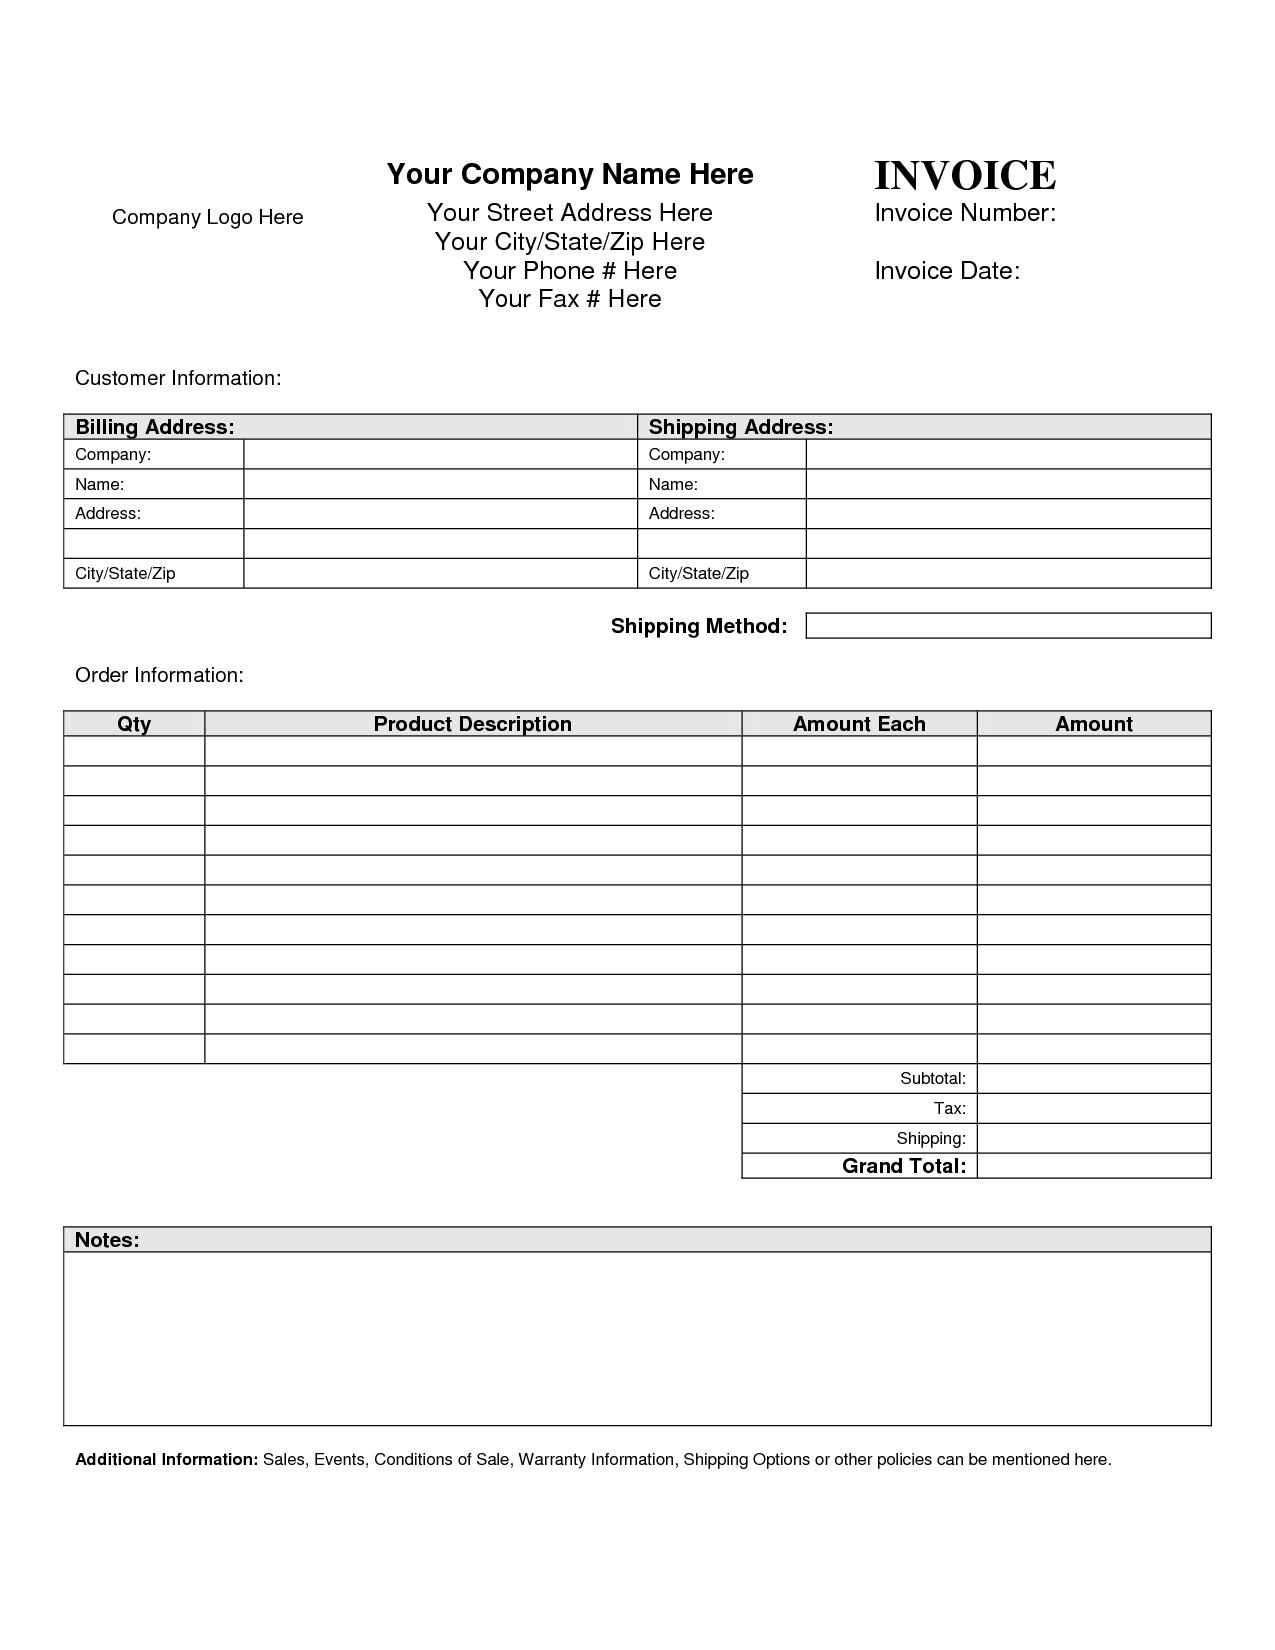 blank invoice for mac office back free invoice for mac